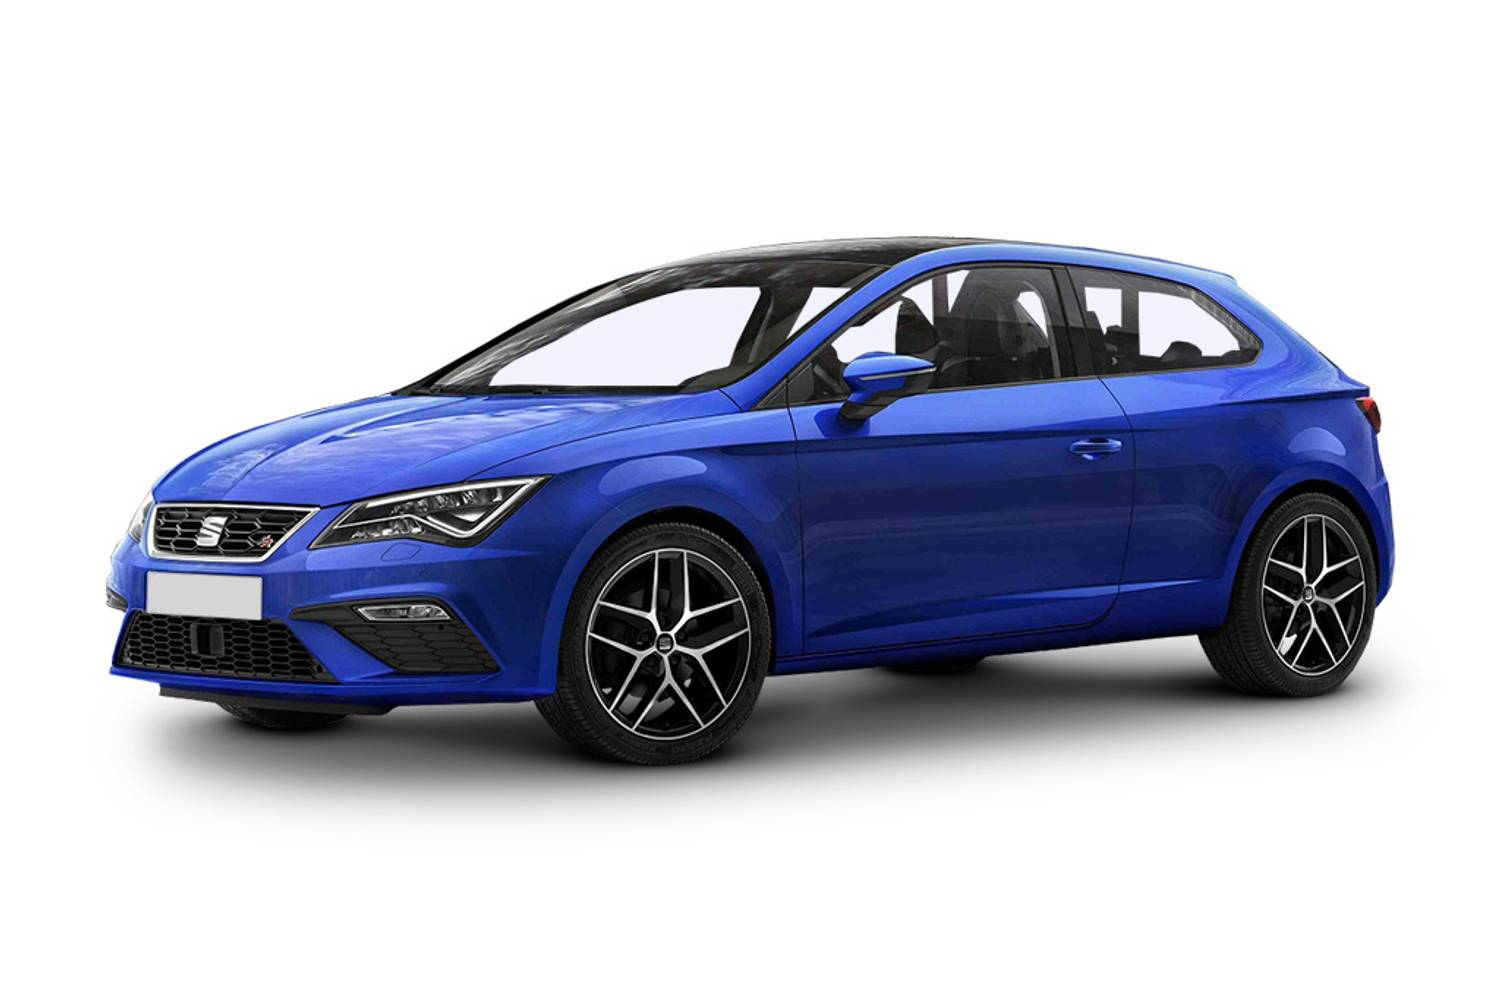 new seat leon diesel sport coupe 2 0 tdi 184 ps fr titanium technology 3 door dsg 2016 for sale. Black Bedroom Furniture Sets. Home Design Ideas